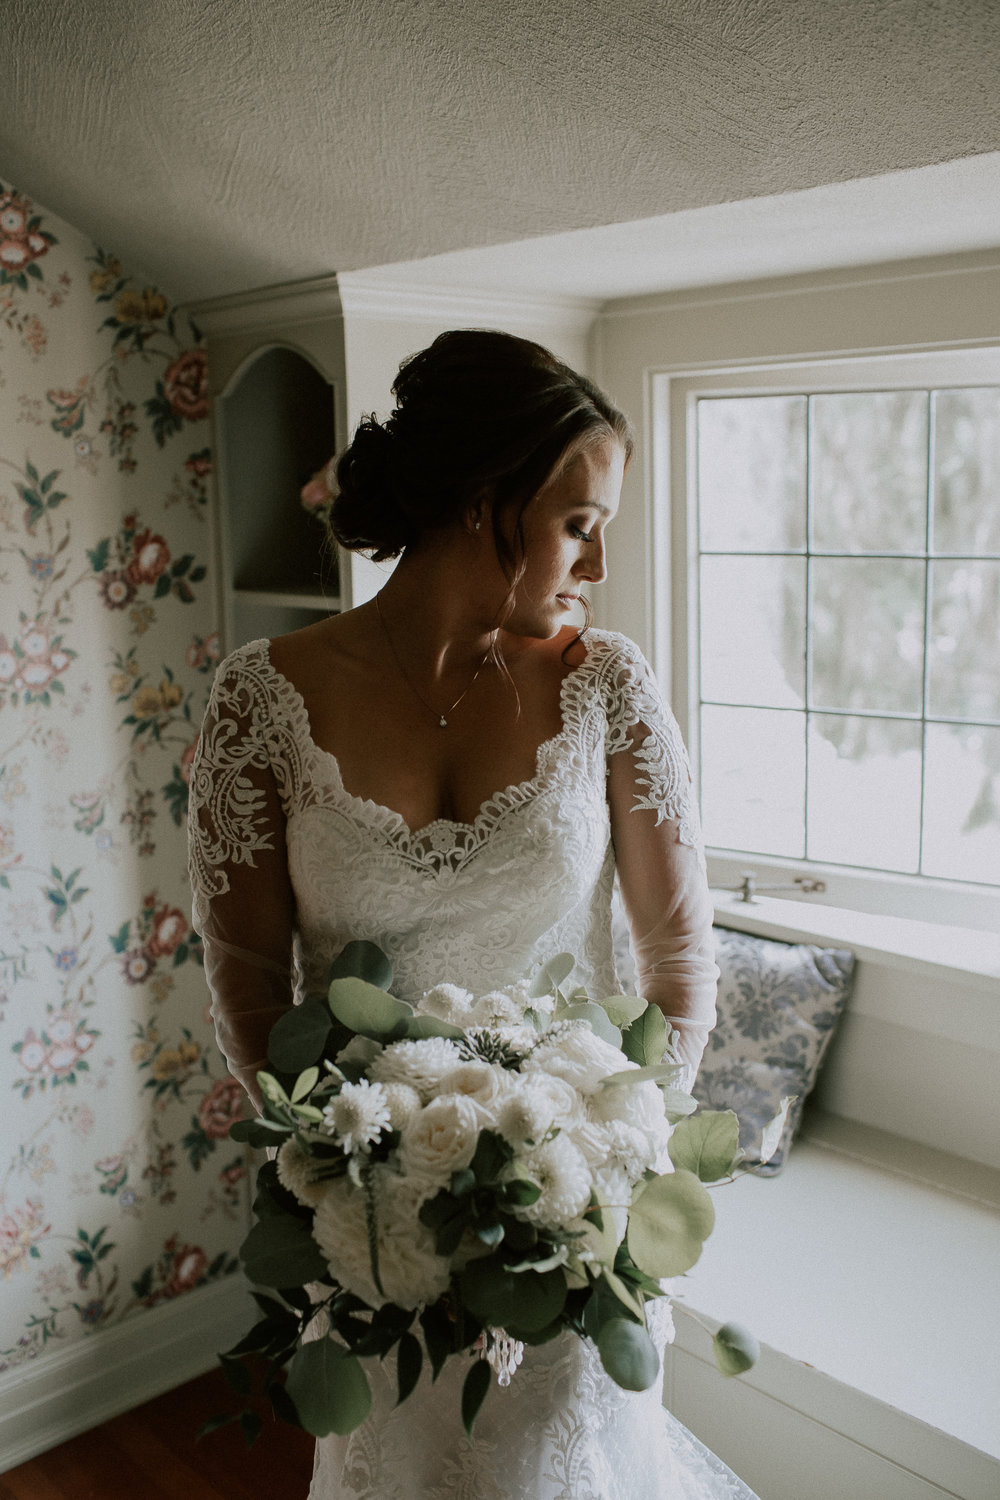 Bridal Portrait by Tony Asgari Photography at Laurel Creek Manor Wedding